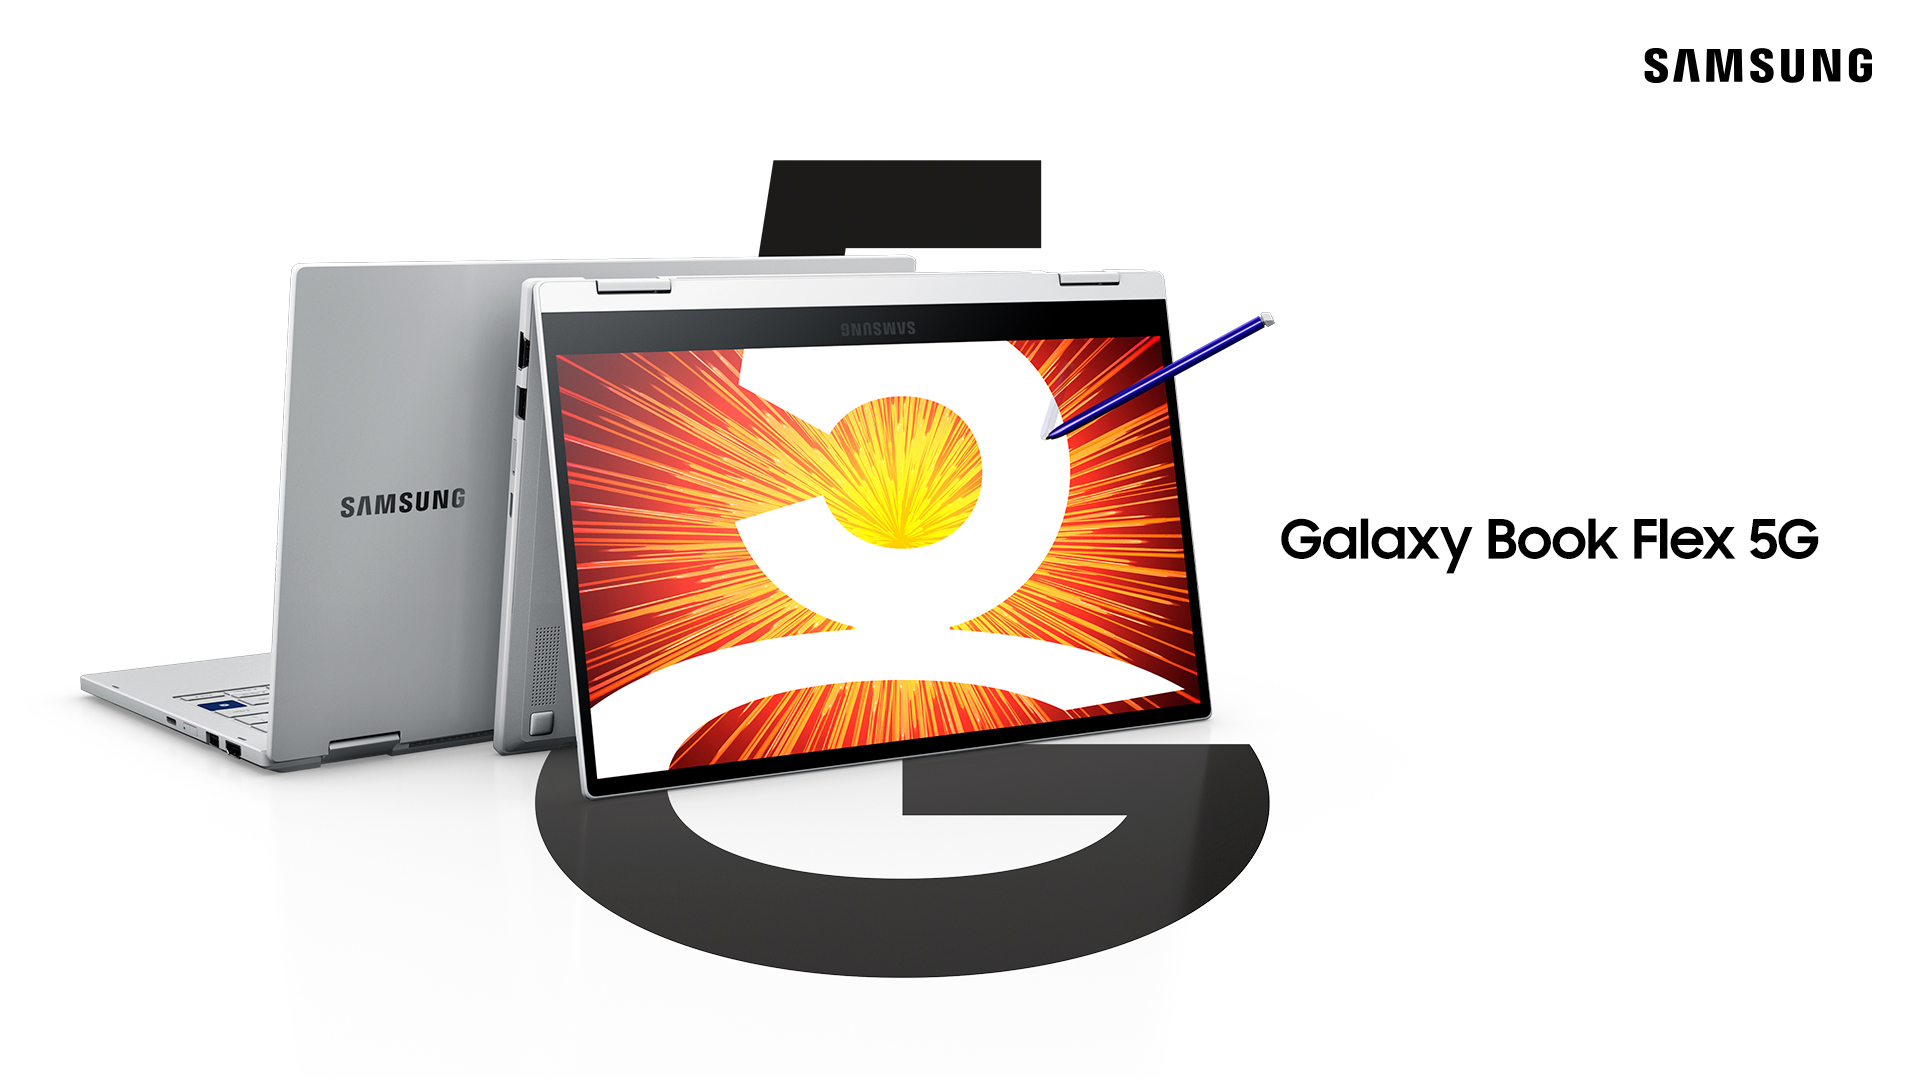 Galaxy Book Flex 5G